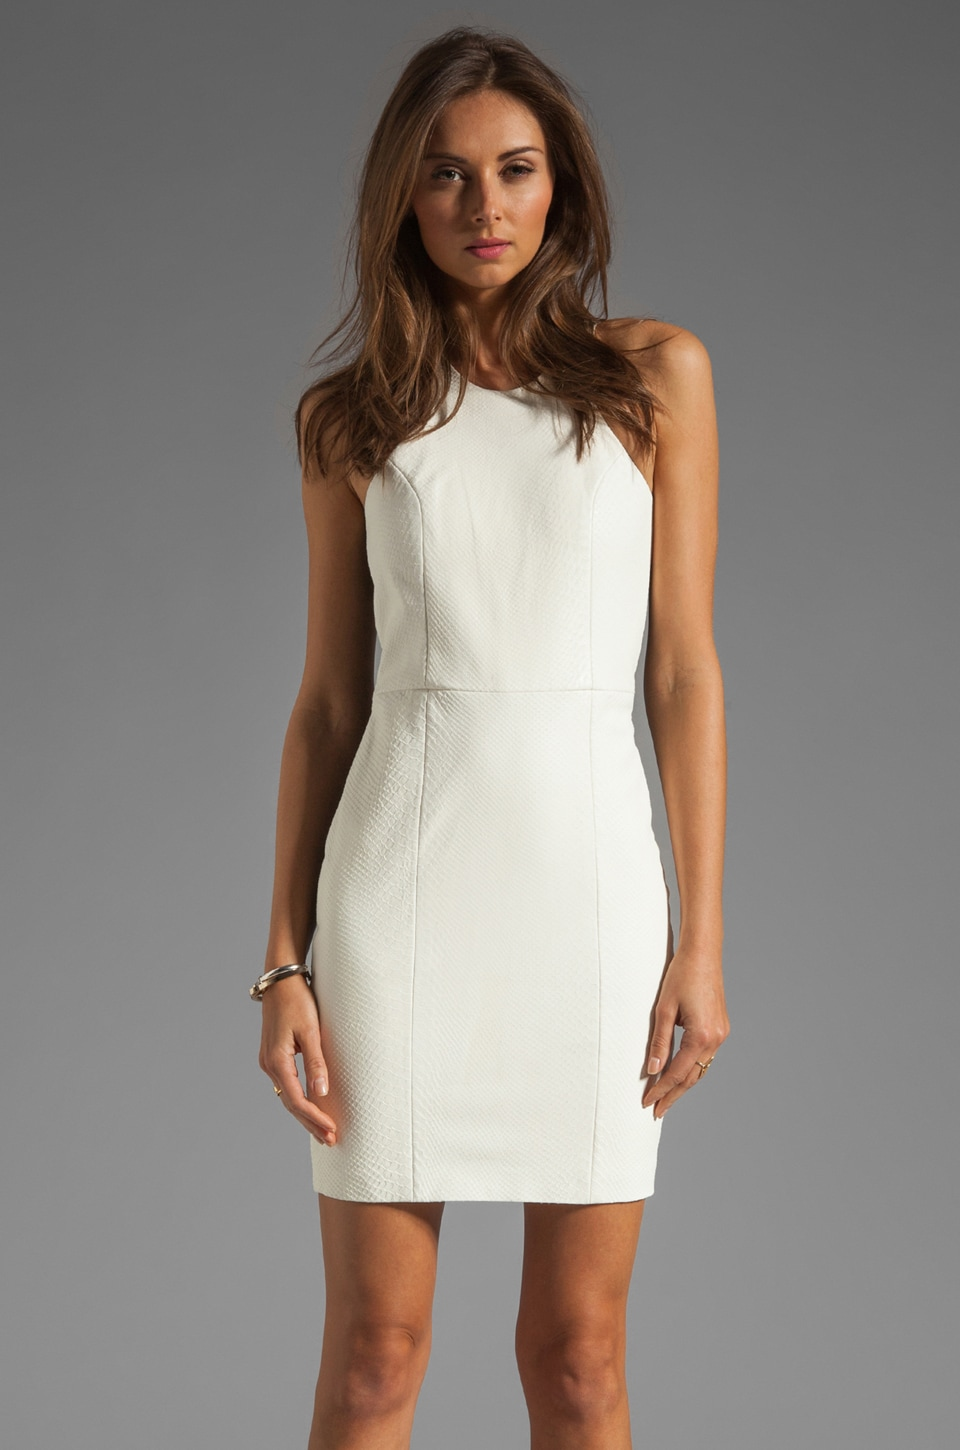 Mason by Michelle Mason Leather Front Dress in Ivory